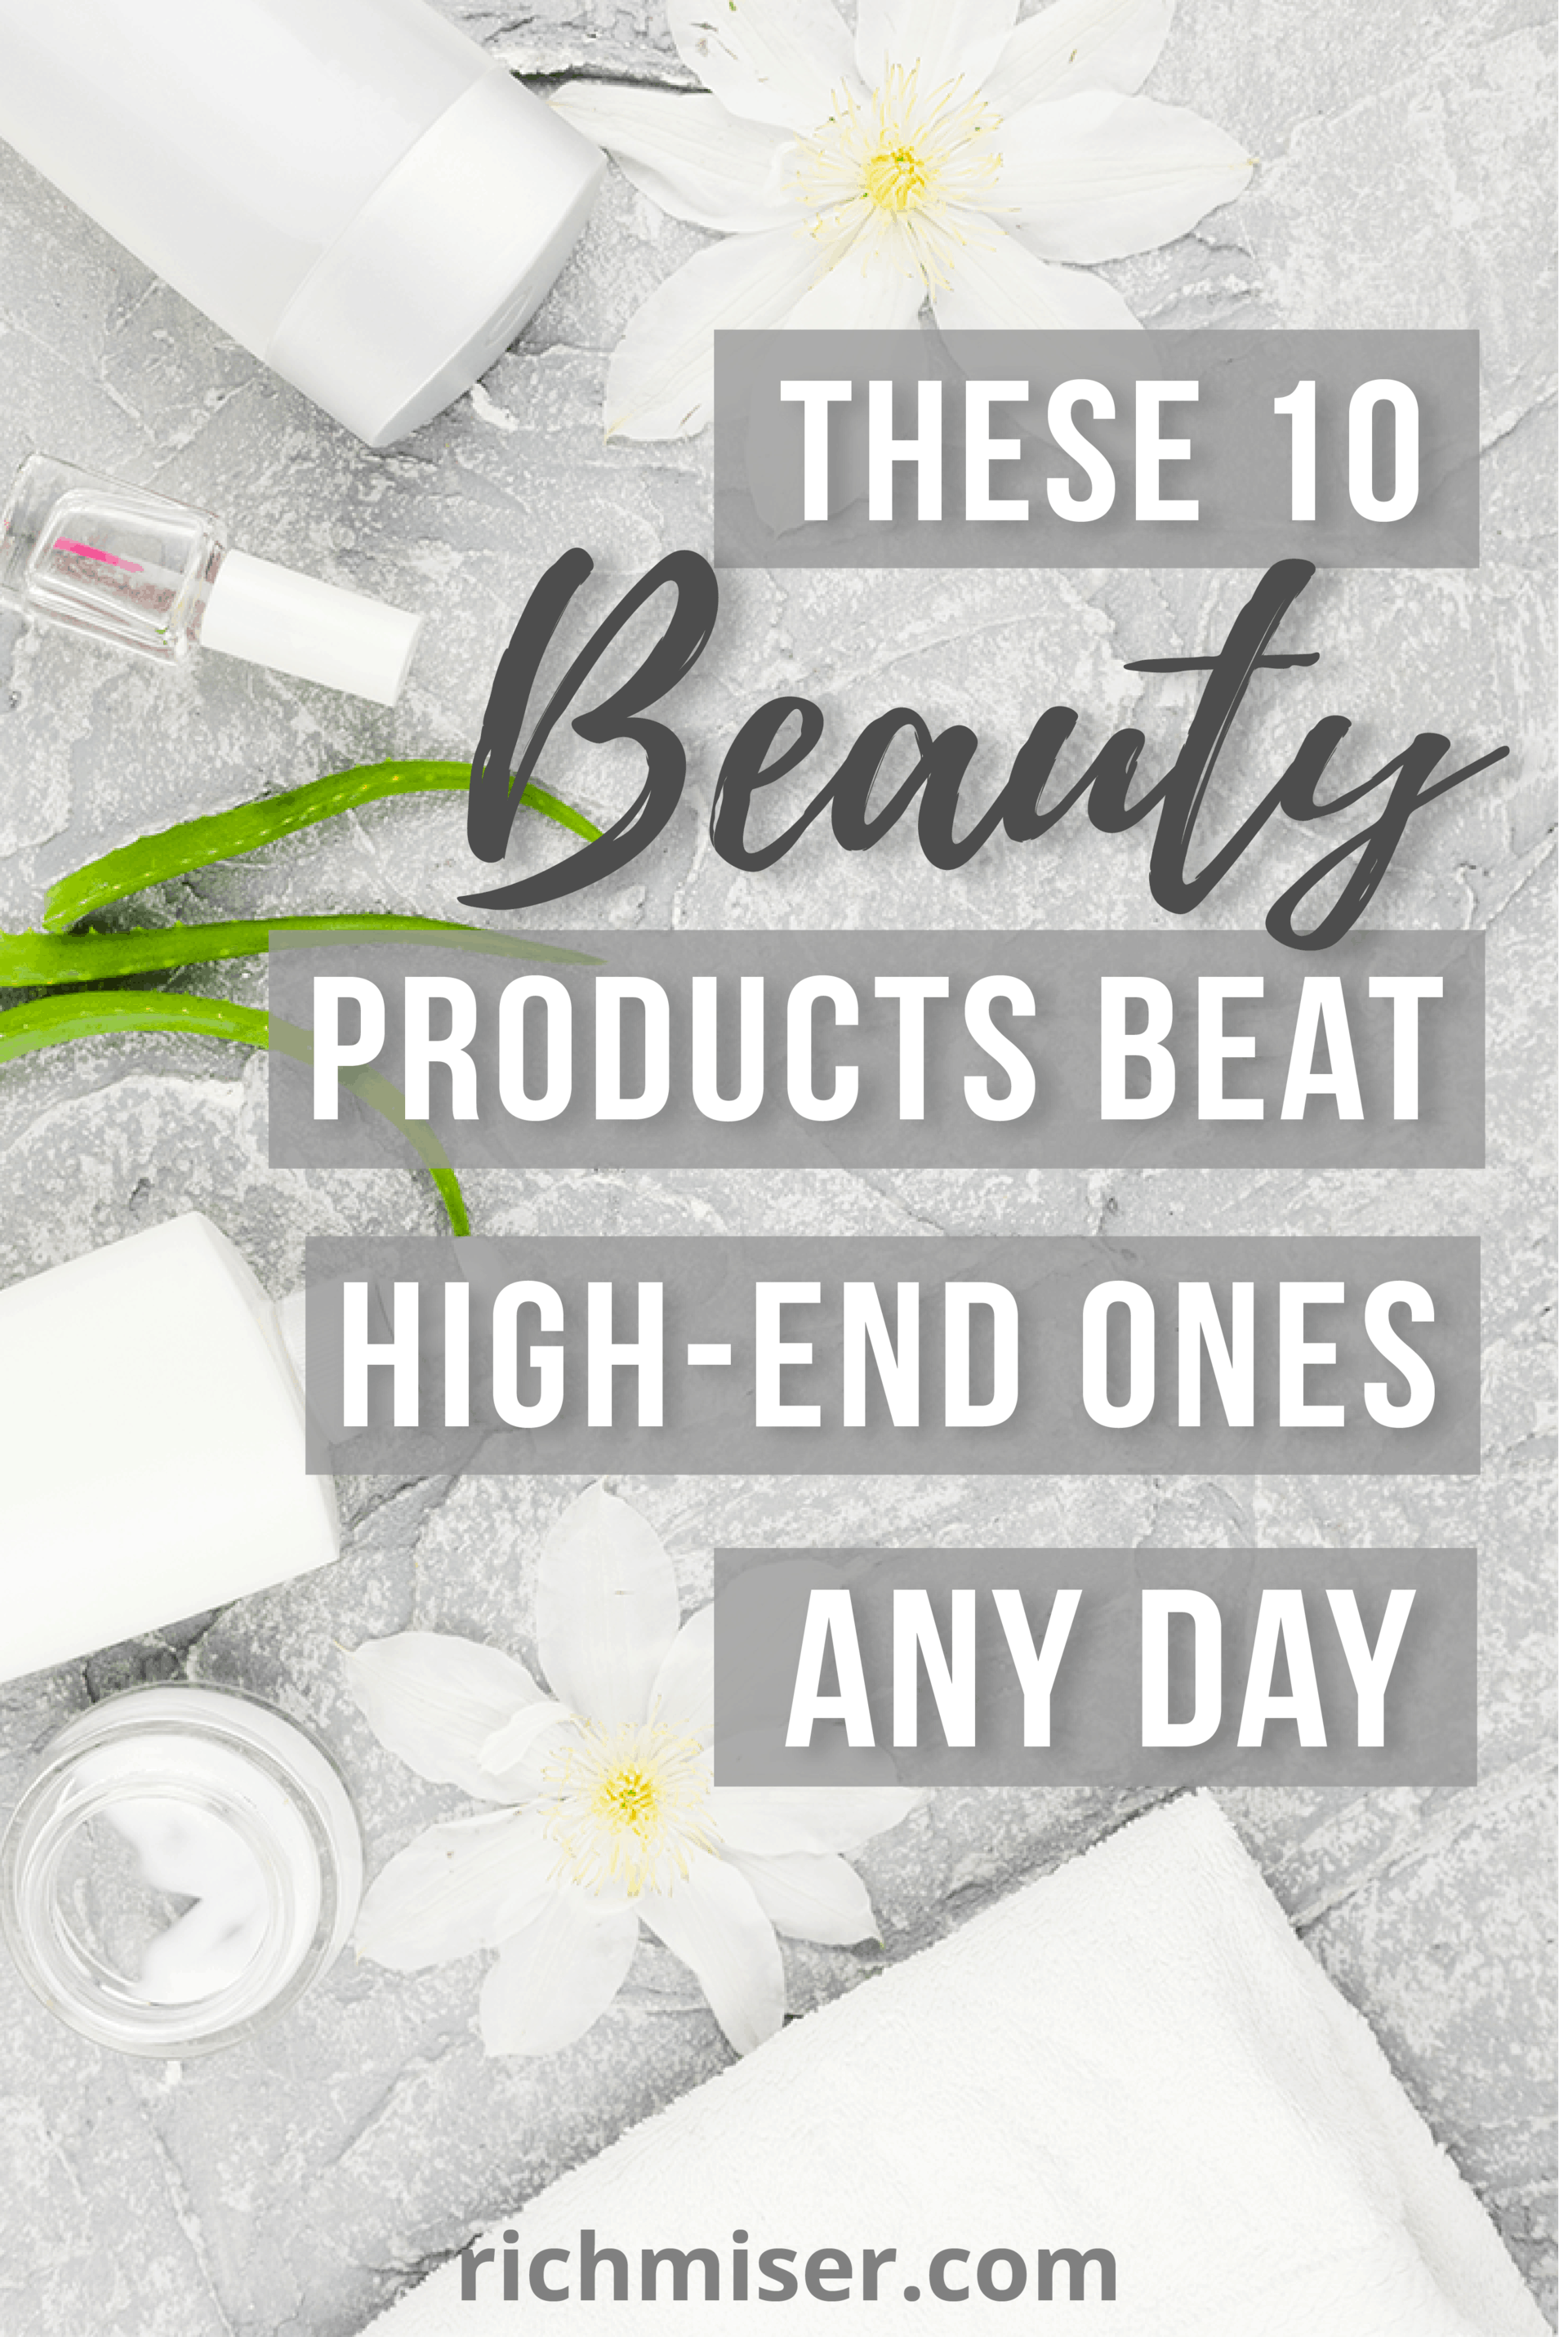 These 10 Beauty Products Beat High-End Ones Any Day